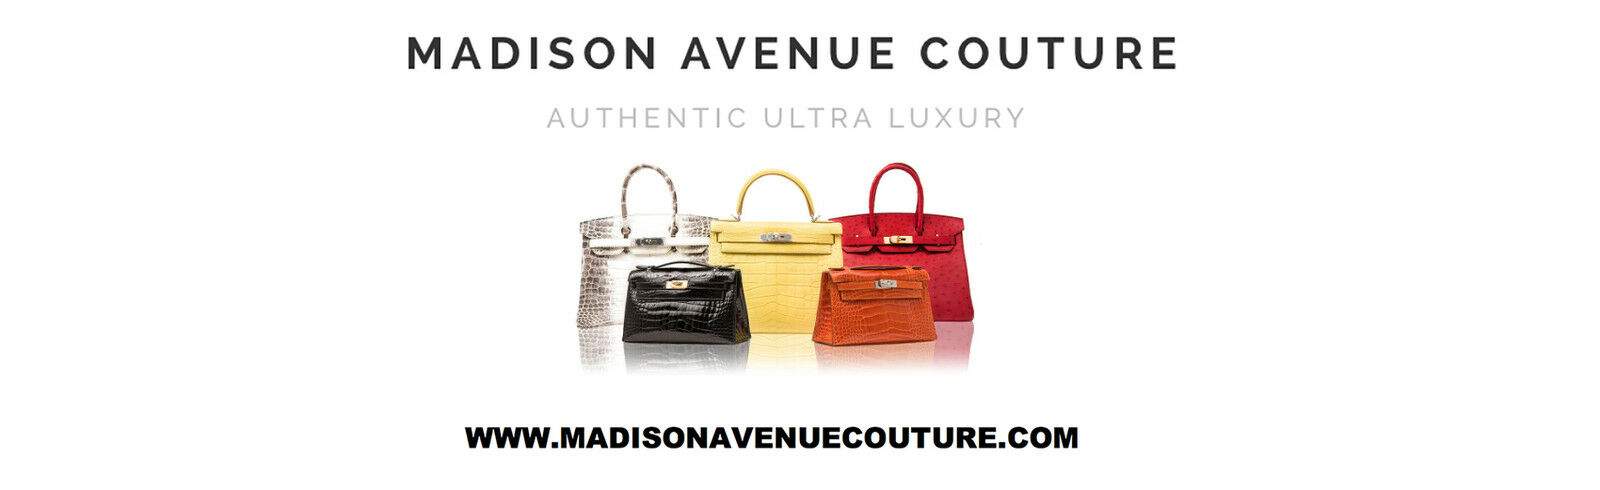 Madison Avenue Couture